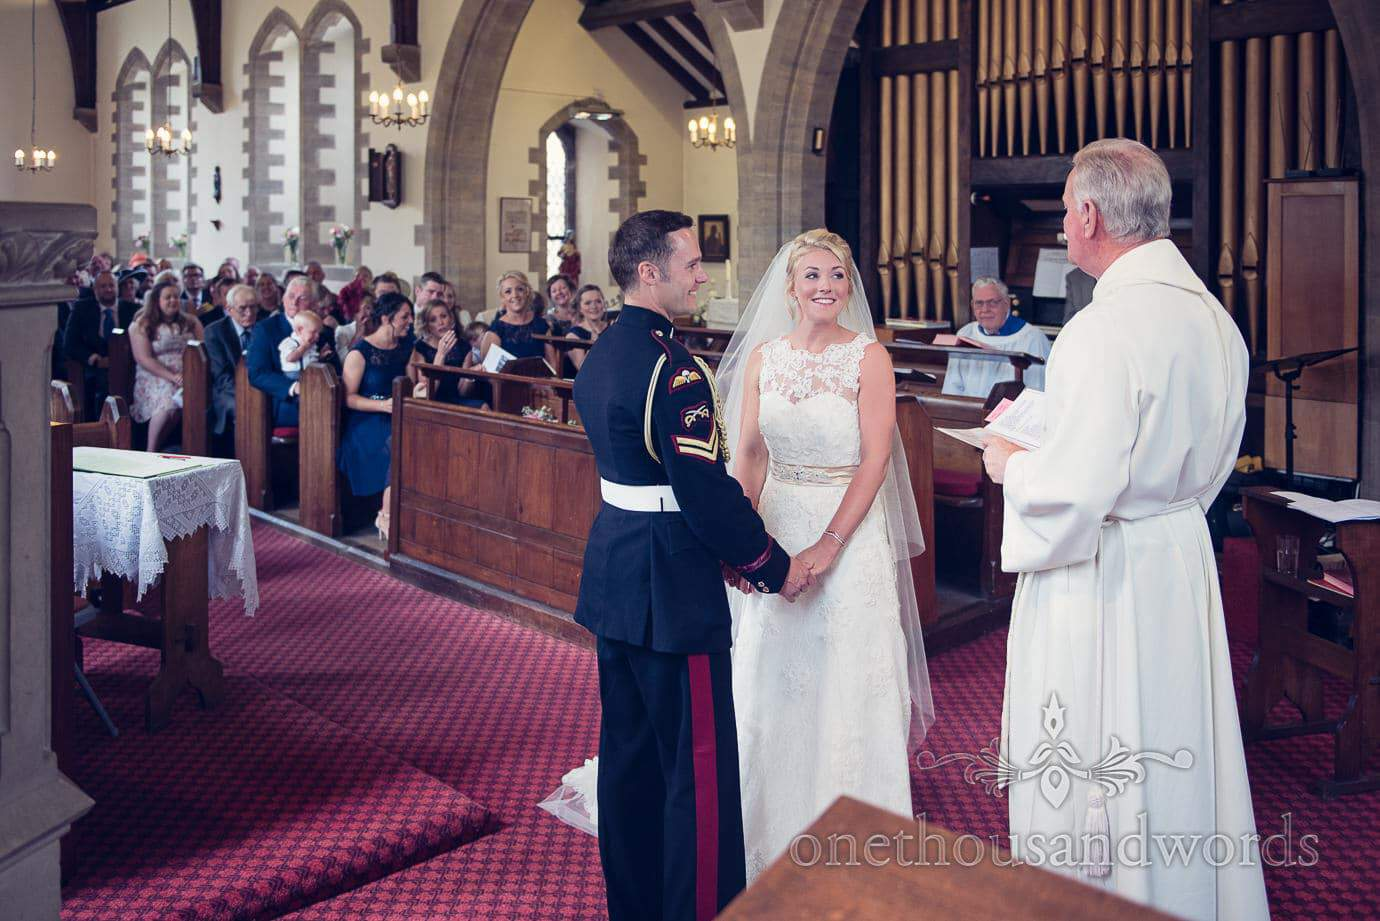 Military church wedding service at St Marks Church in Swanage, Dorset